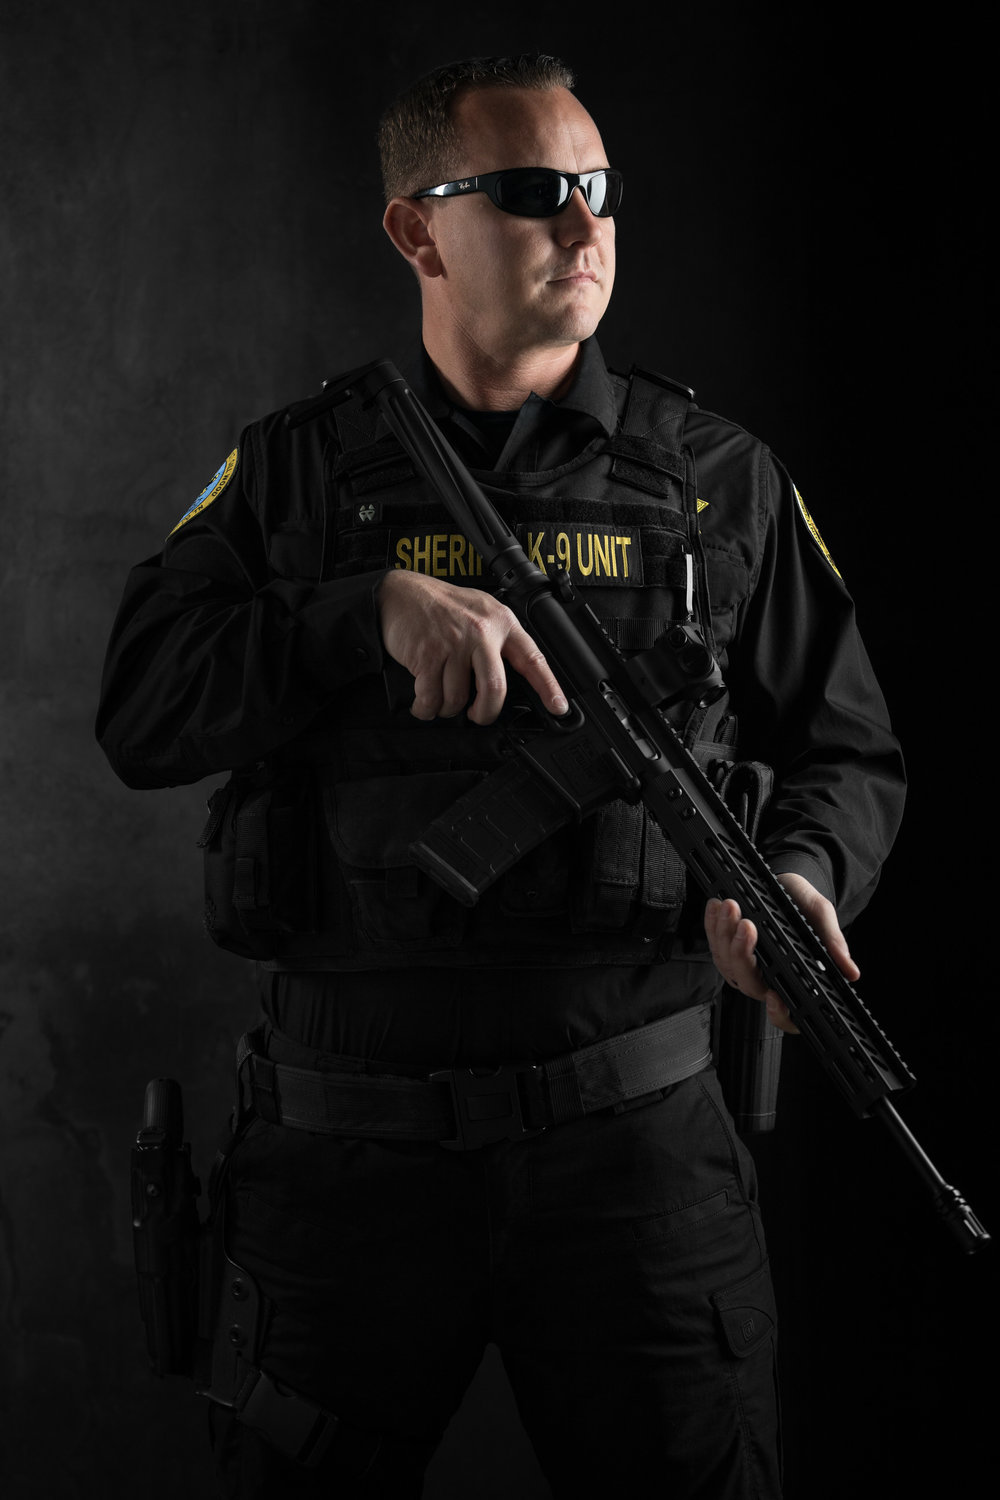 Nashville Advertising Photographers shot this image for the Clarksville PD